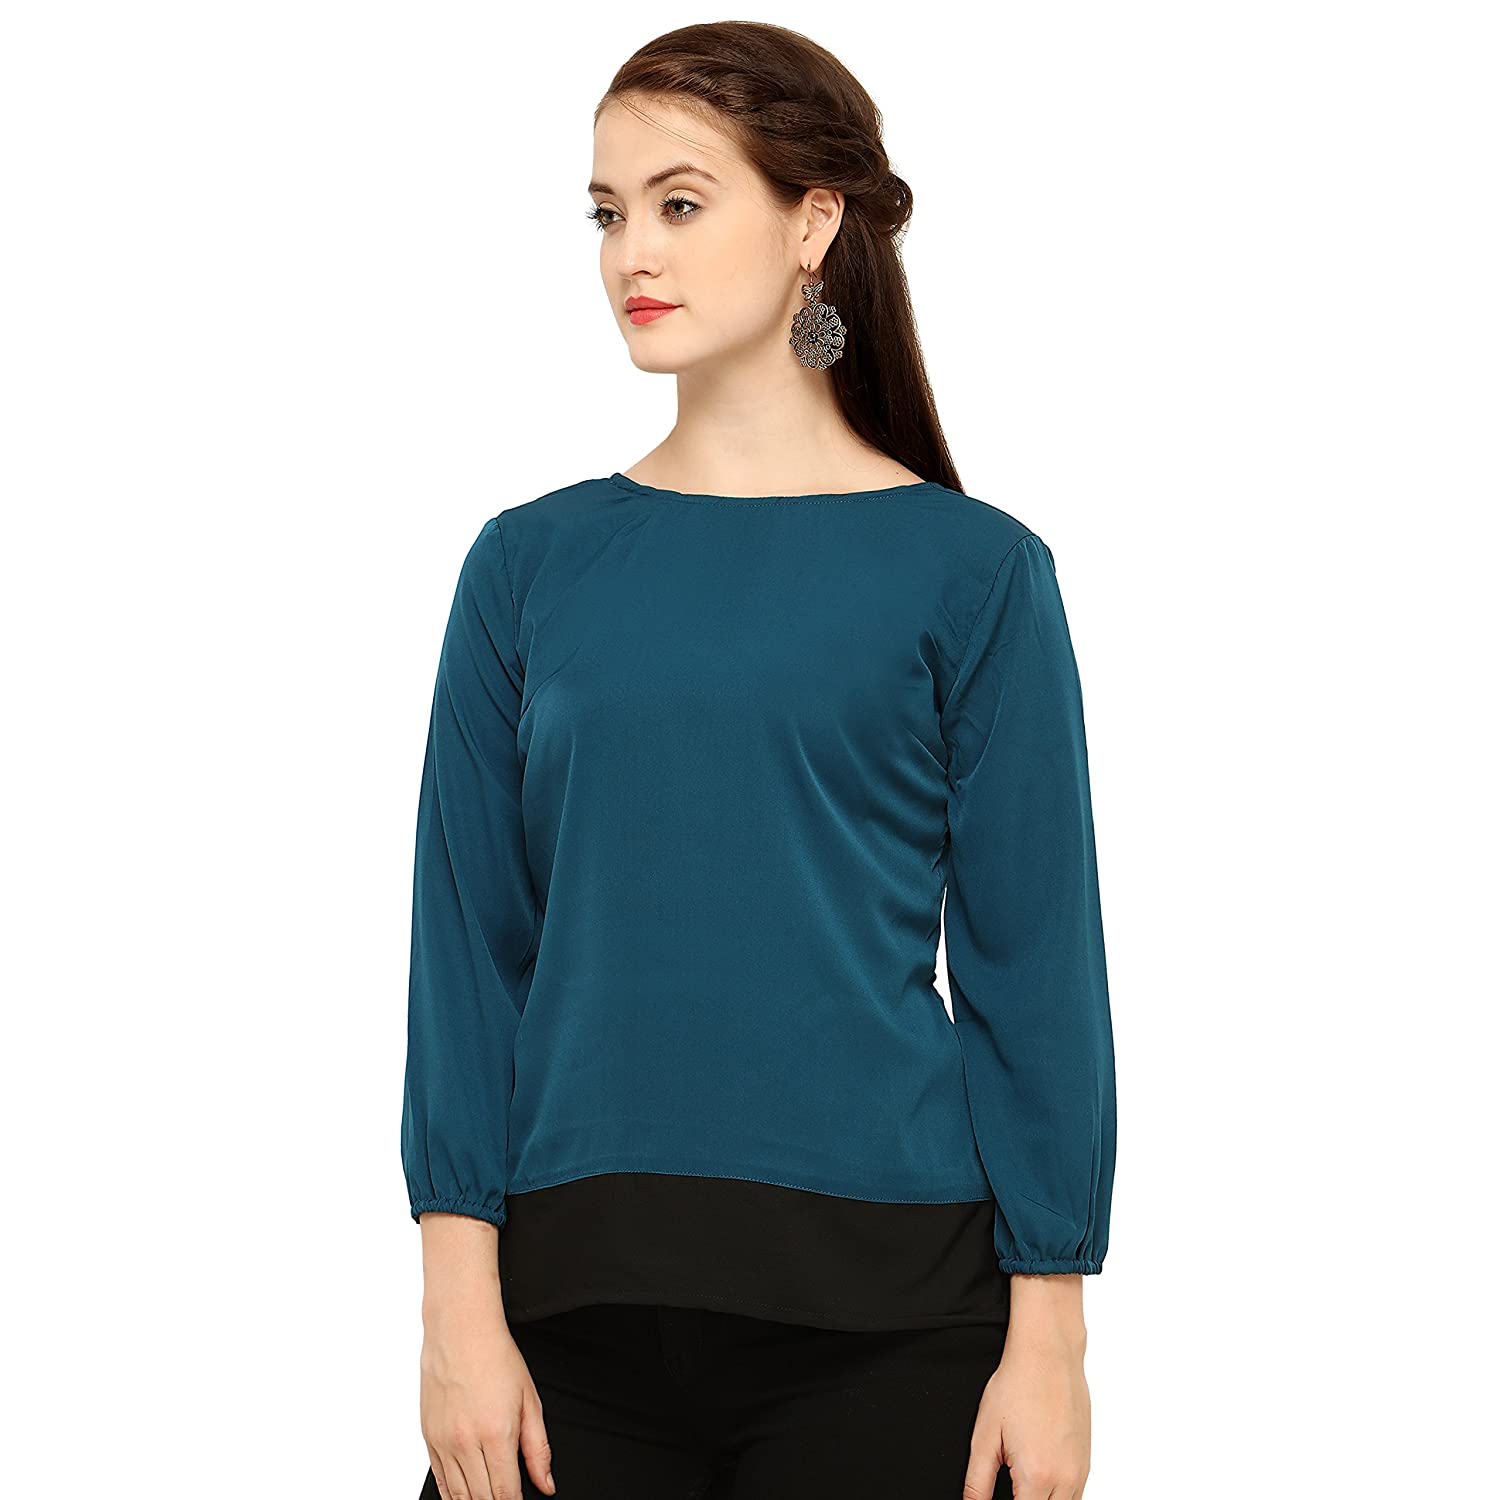 817d5df8cbe8f5 Vrati Fashion Women Tunic Short Top for Jeans Plain Diamond Creap Top for Daily  wear Stylish Casual and Western Wear Women/Girls Top: Amazon.in: Clothing &  ...